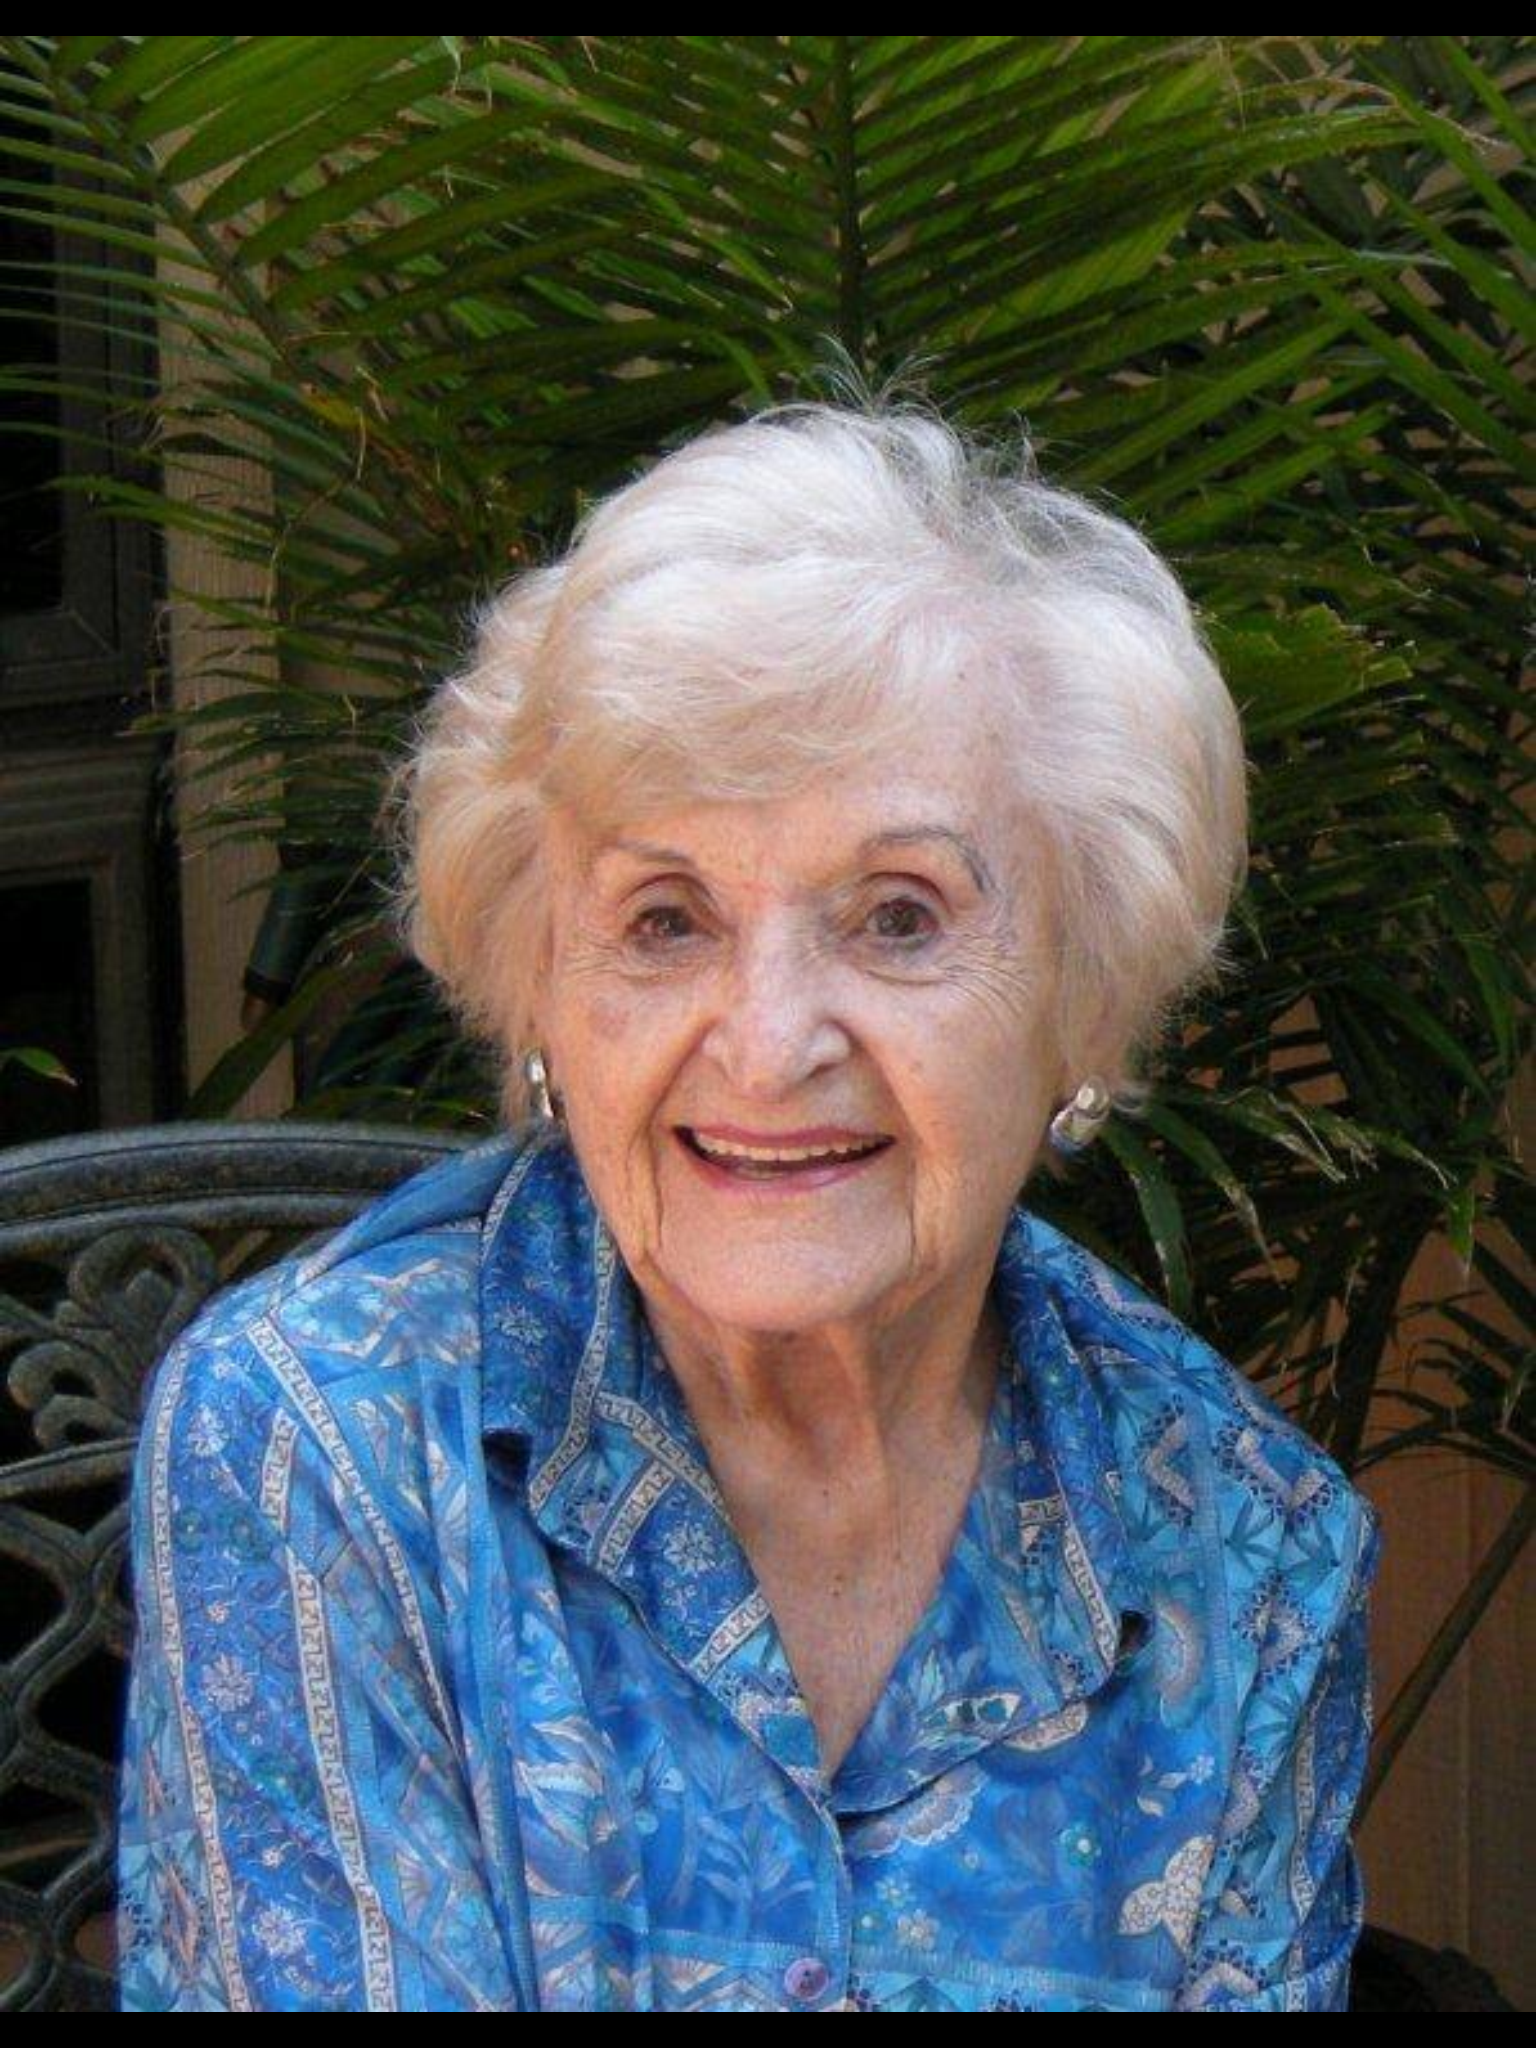 My beloved aunt, Linda Lay Shuler, on her 100th birthday. A remarkable woman who touched my life indelibly!